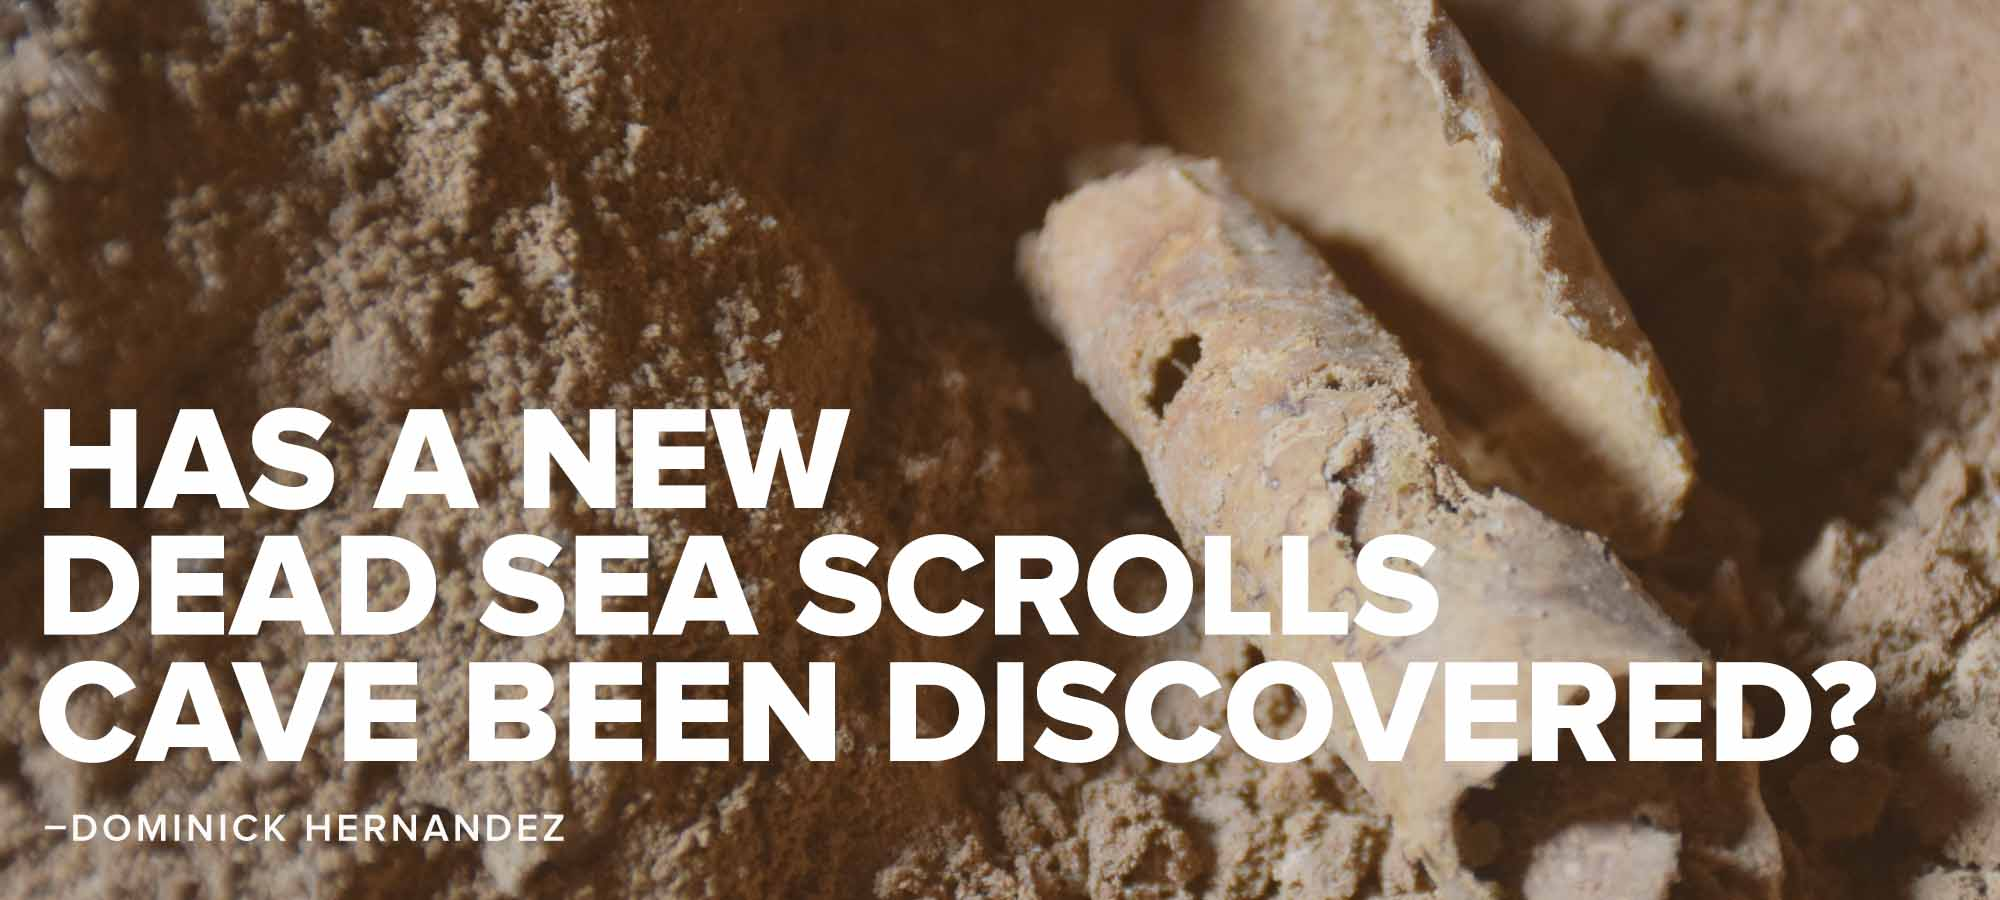 Has a new dead sea scrolls cave been discovered?